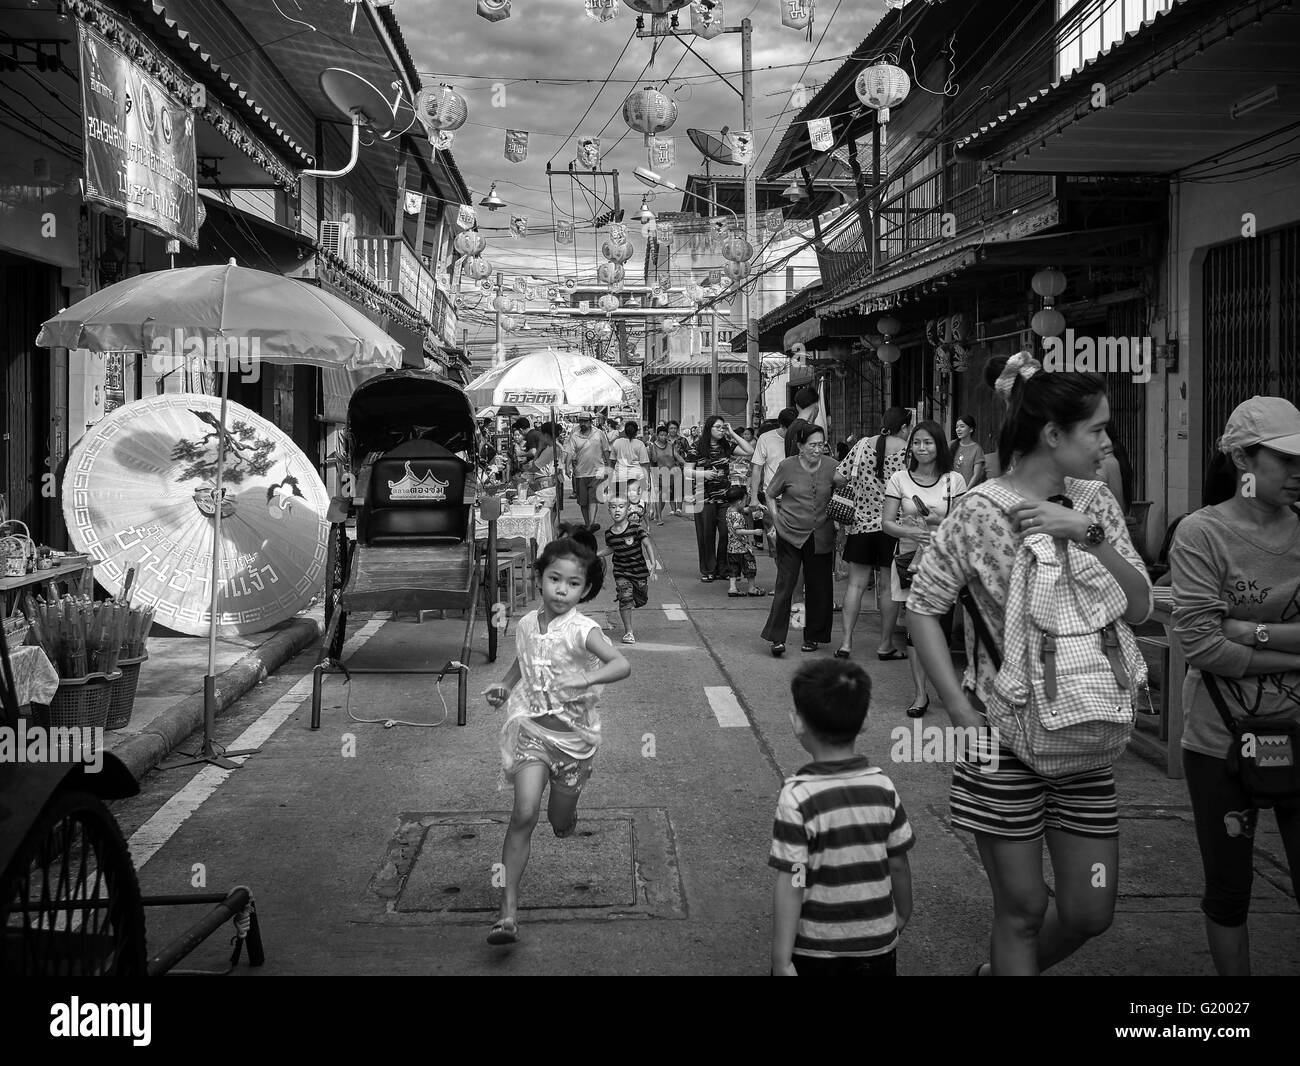 traditional-street-scene-china-town-thai